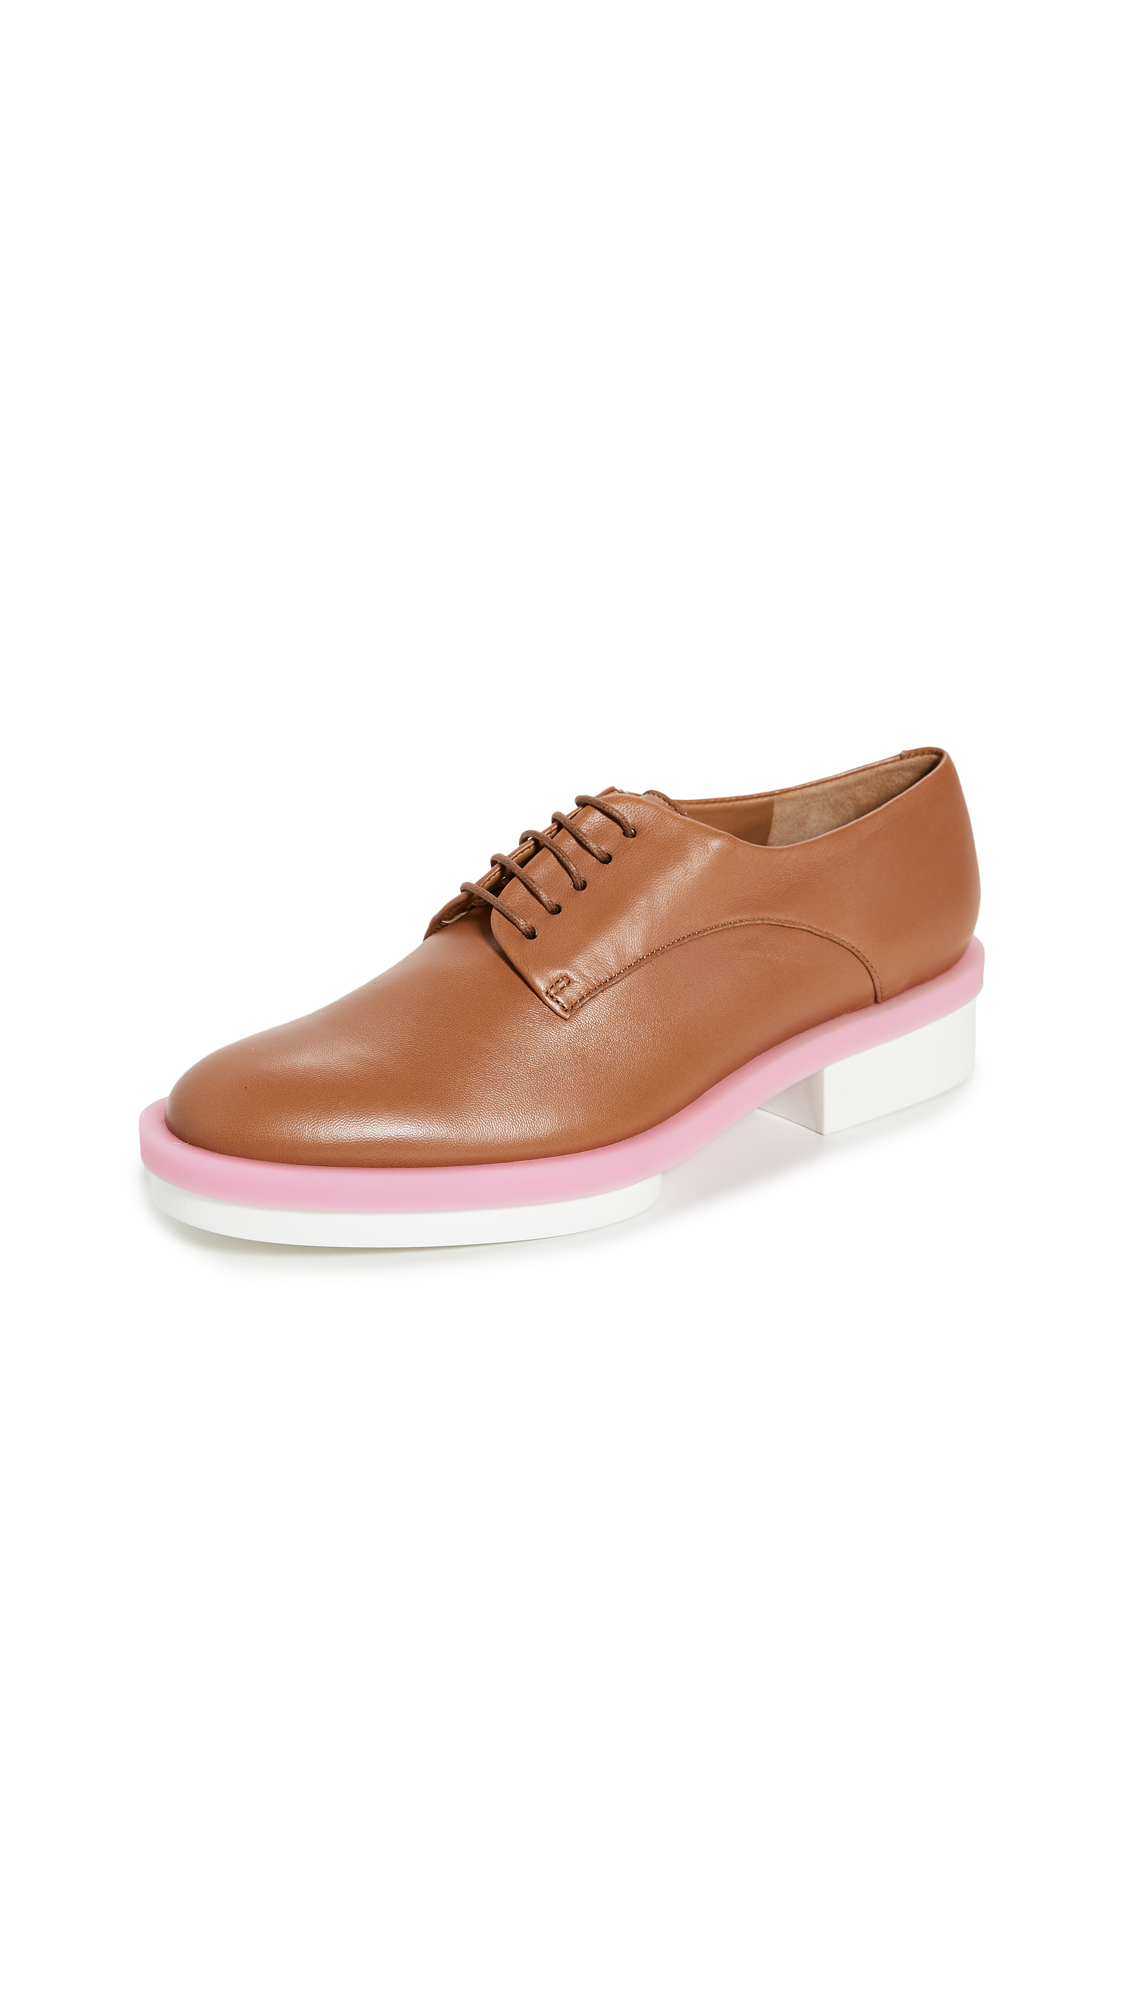 Clergerie Roma3 Oxford - 50% Off Sale